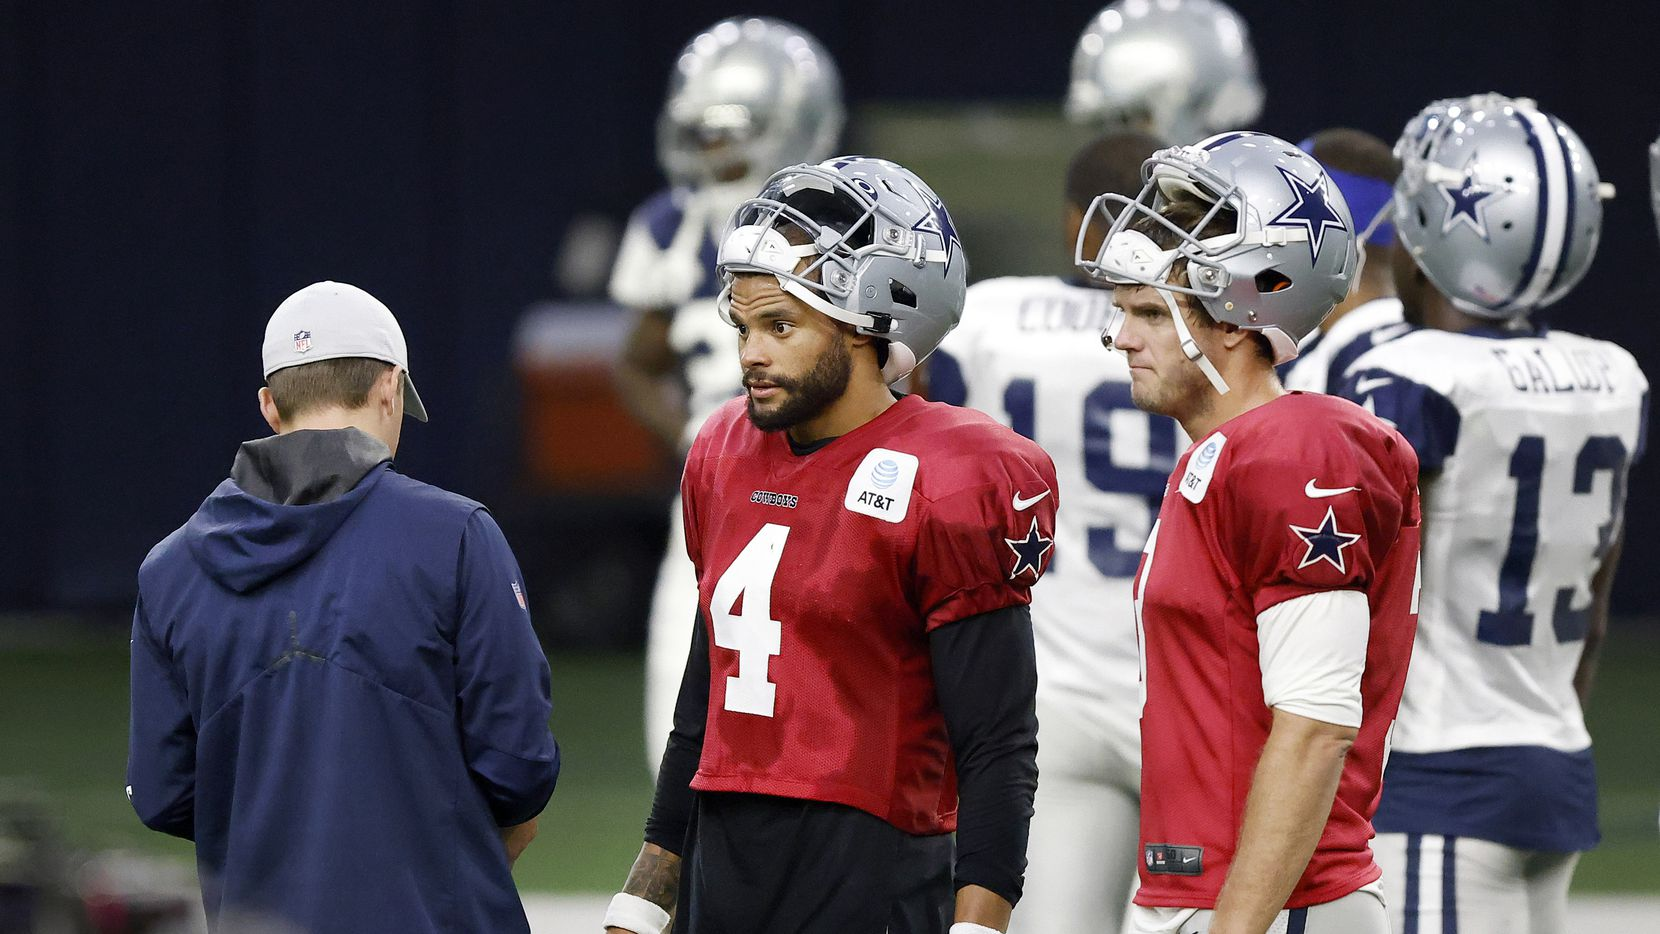 Dallas Cowboys quarterback Dak Prescott (4) visits with offensive coordinator Kellen Moore (left) as he and fellow quarterback Garrett Gilbert (3) wait their turn to play during Training Camp practice at The Star in Frisco, Texas, Wednesday, August 18, 2021.